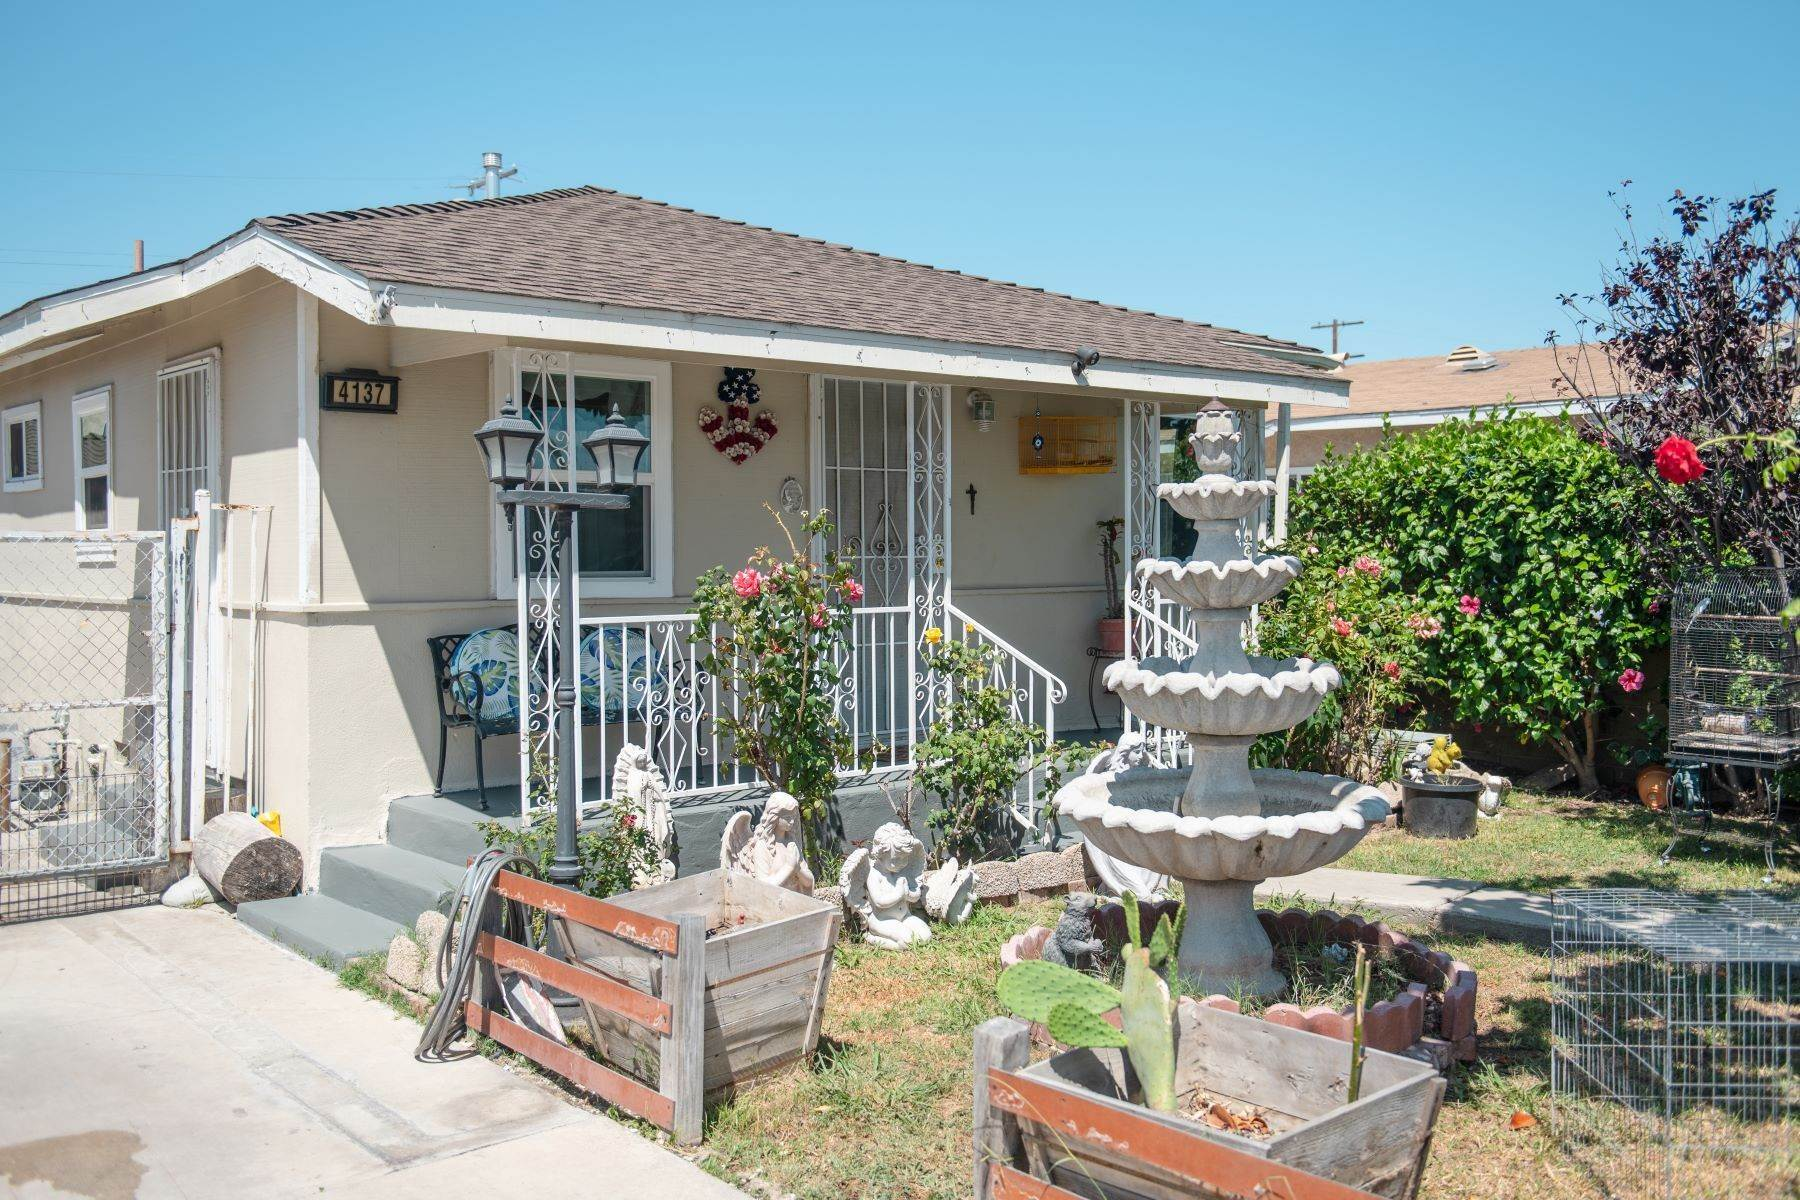 Single Family Homes for Sale at 4137 West 159th Street, Lawndale, CA 90260 4137 West 159th Street Lawndale, California 90260 United States